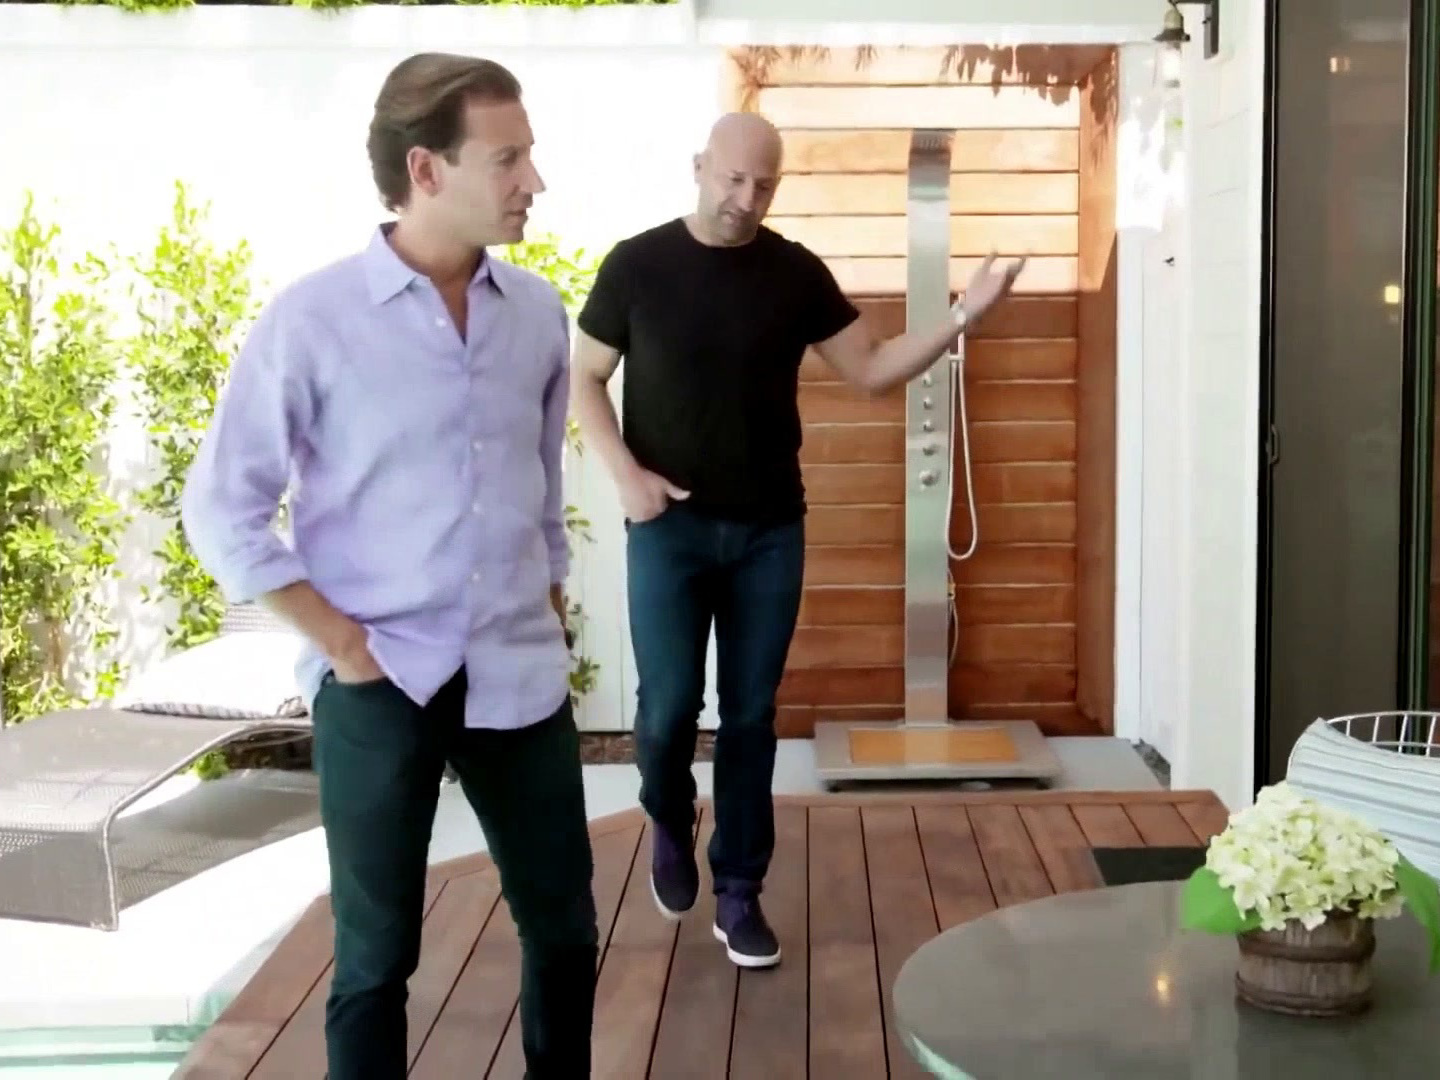 Million Dollar Listing Los Angeles: Altman and Flagg's Co-List